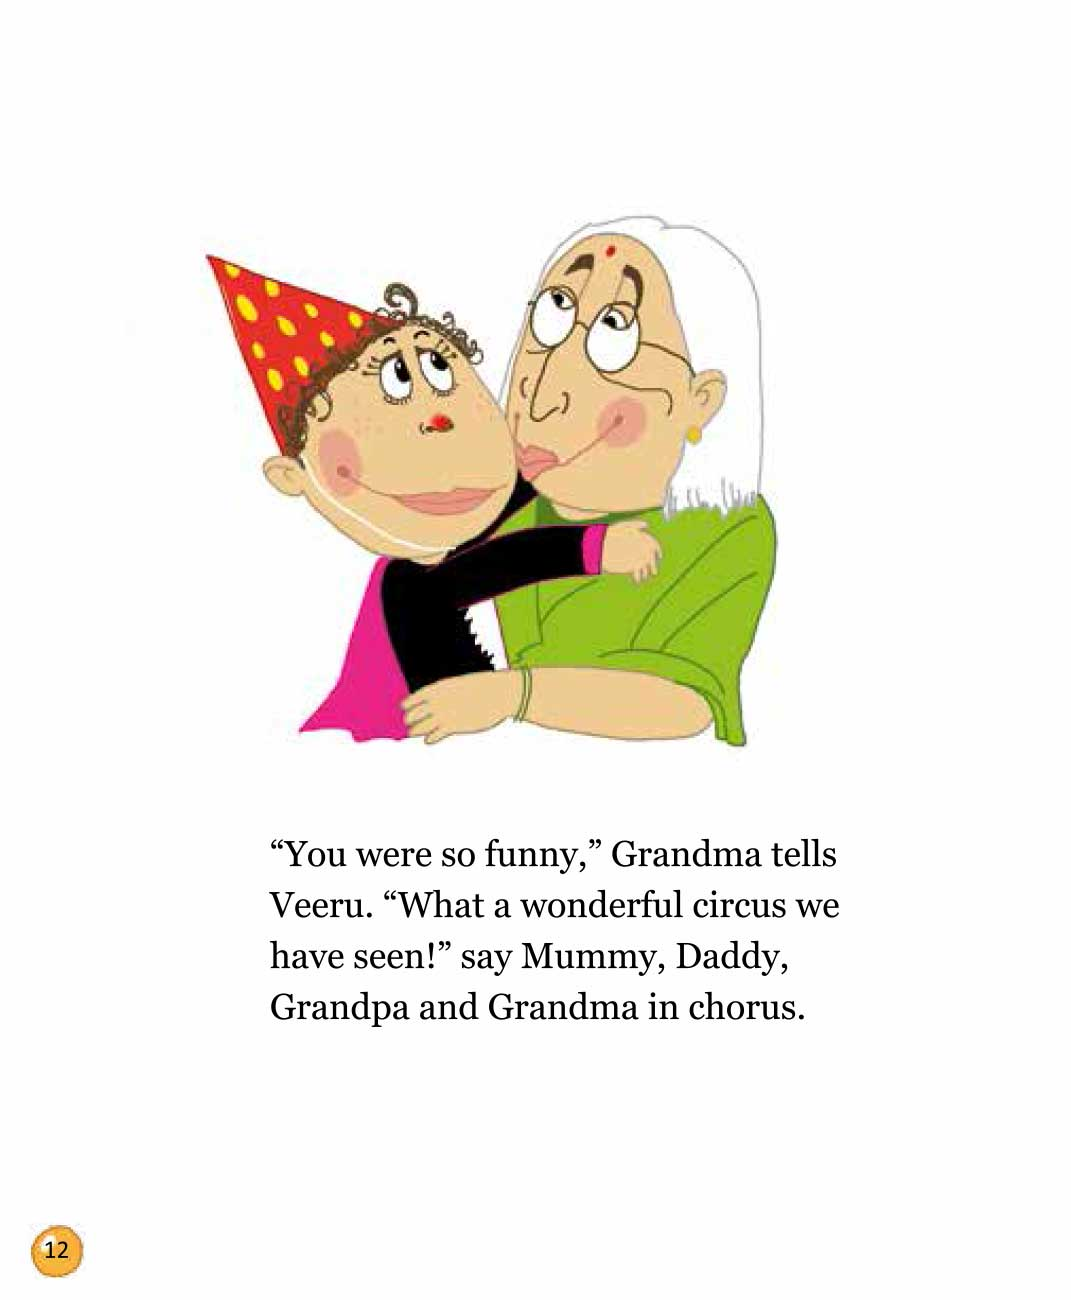 Bedtime stories 'Veeru Goes to the Circus' free picture book page 12